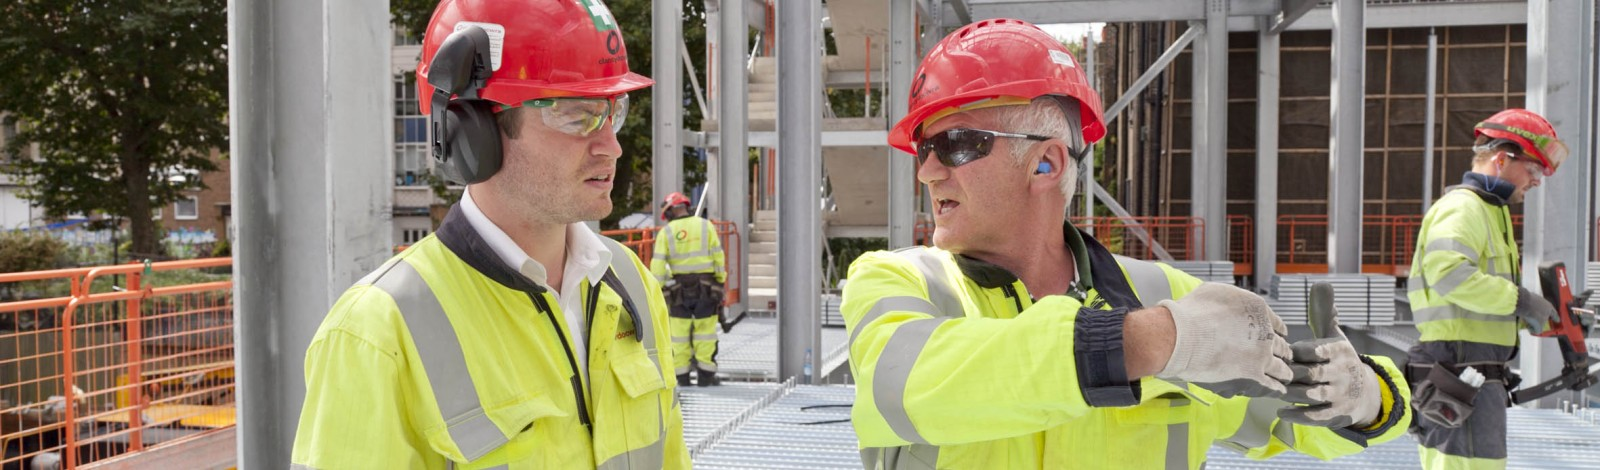 Georgiana Street Substation, St. Pancras – design and construction of a new substation - Clancy